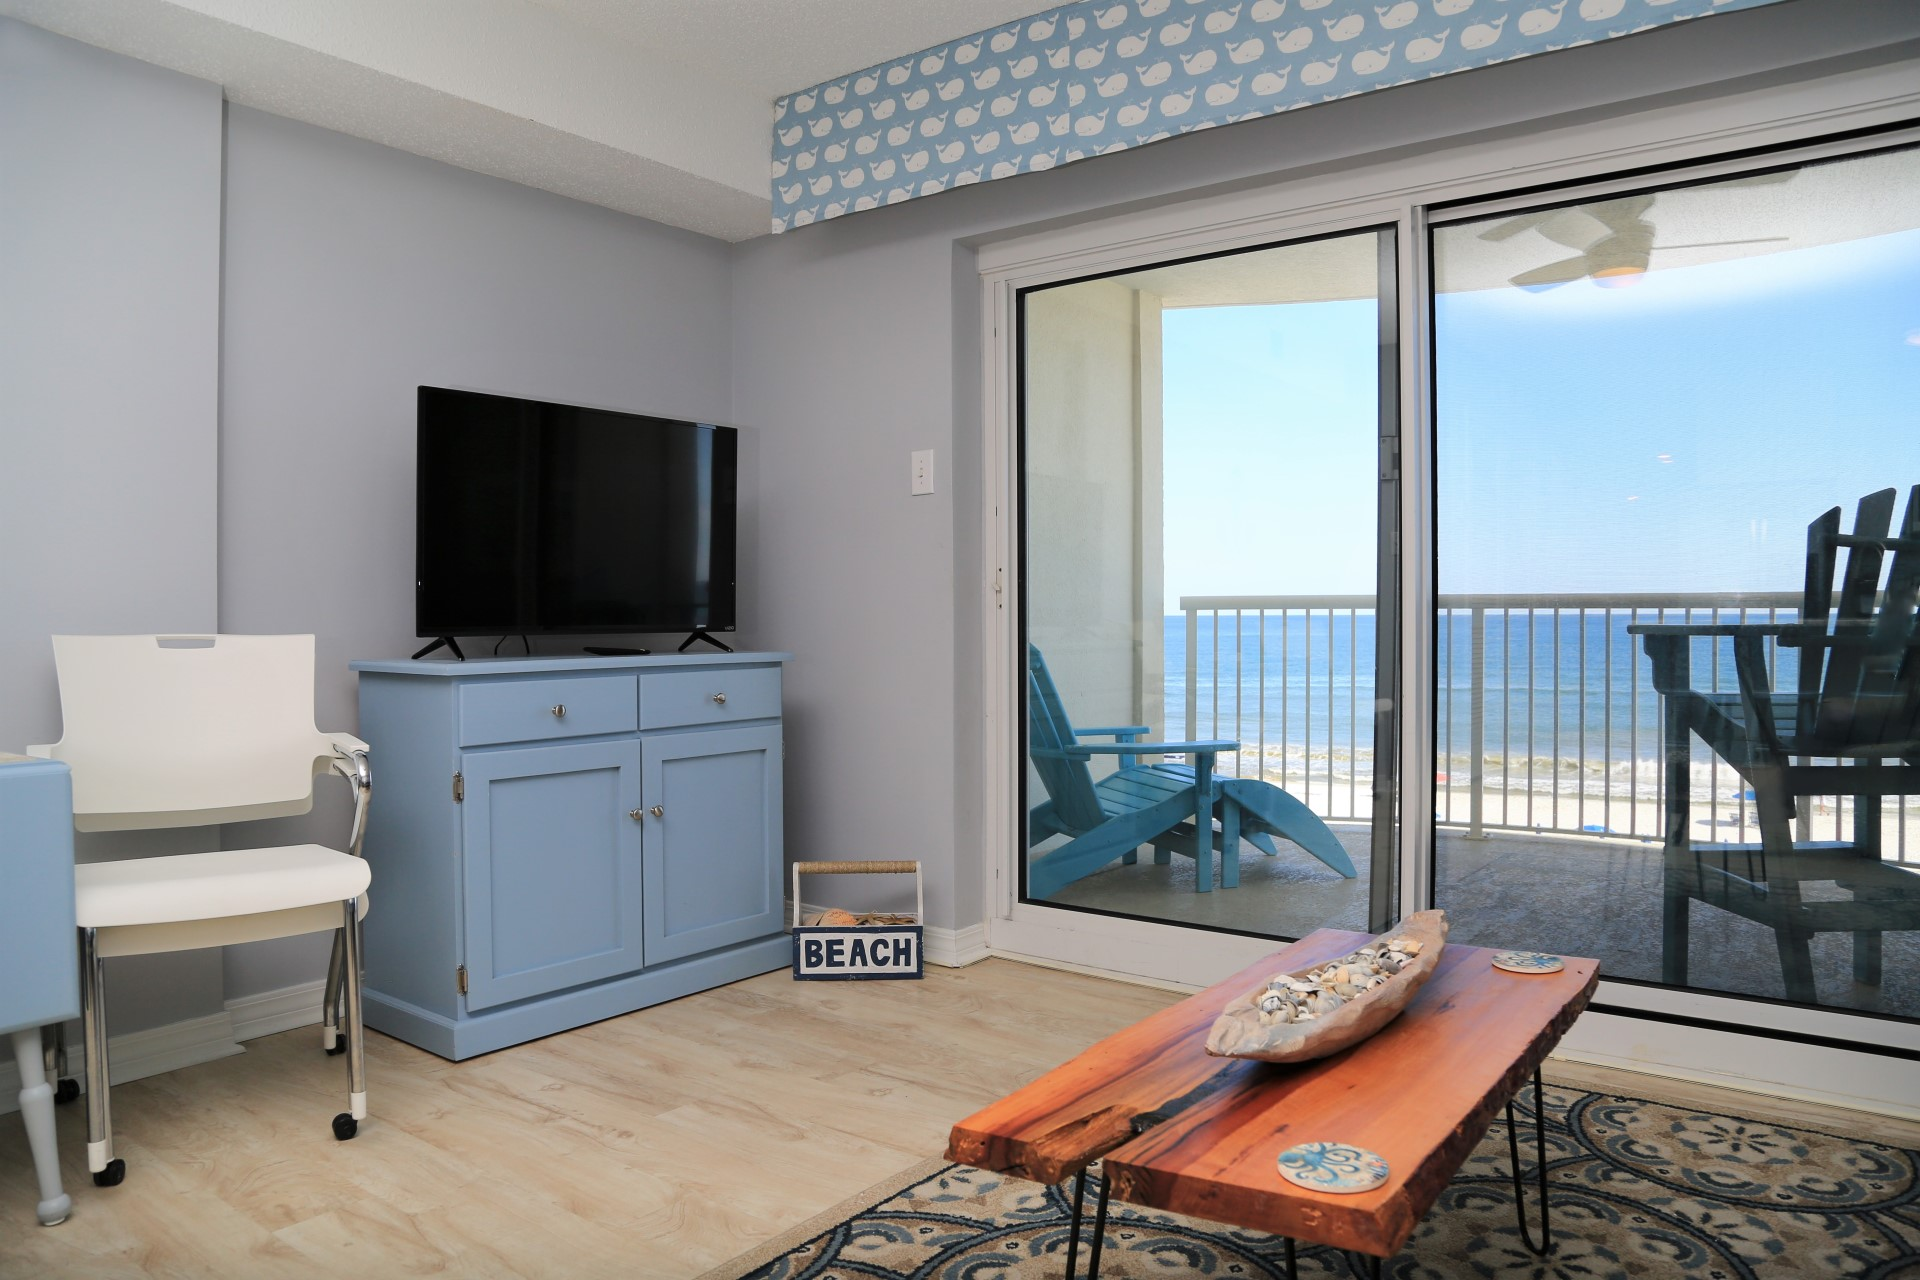 The living room includes a SMART cable TV and amazing views!